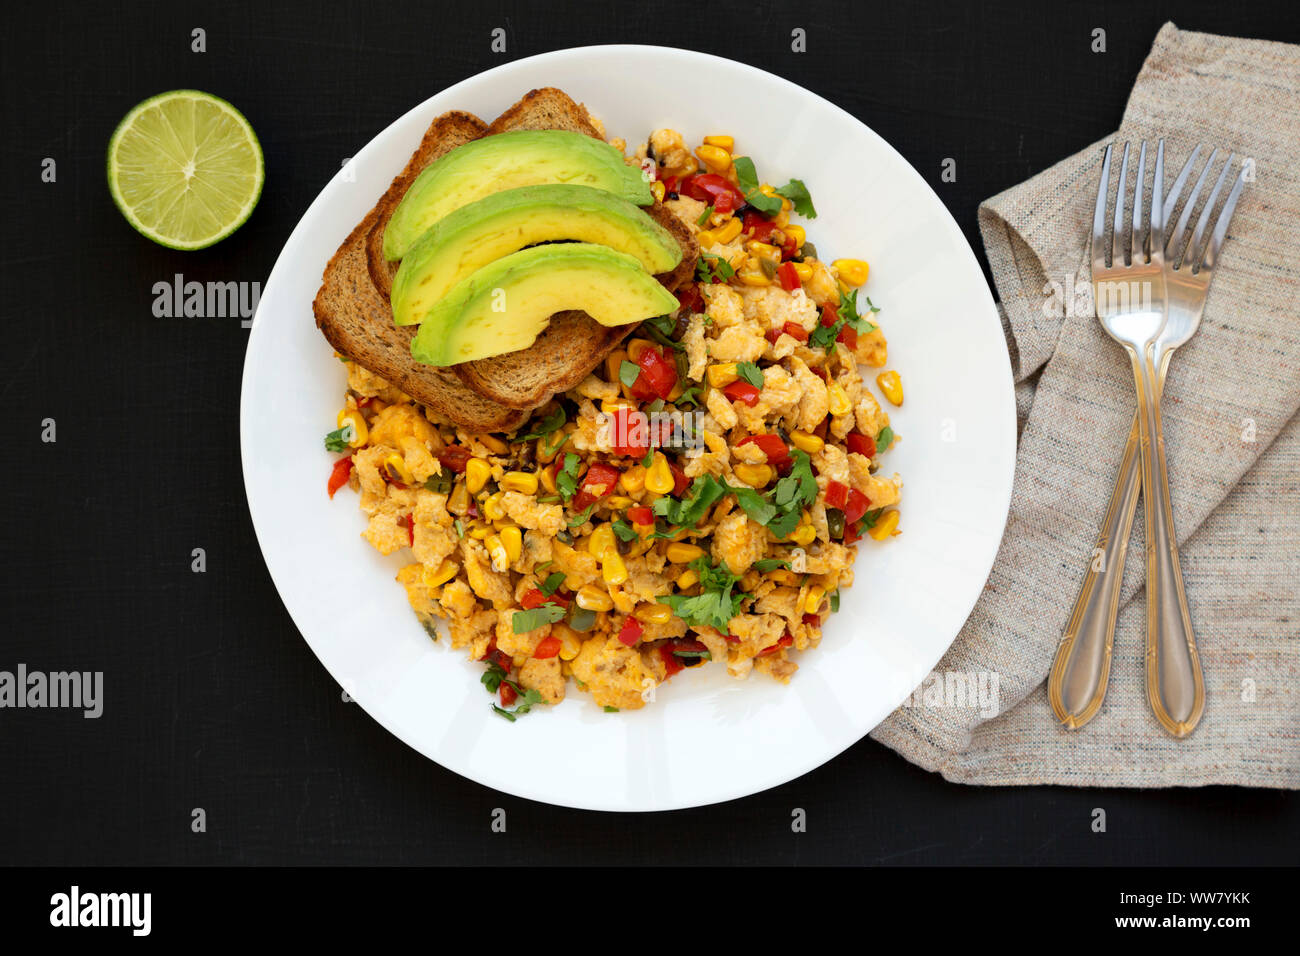 Homemade southwestern egg scramble with toast on a white plate on a black surface, top view. Flat lay, overhead, from above. Close-up. Stock Photo